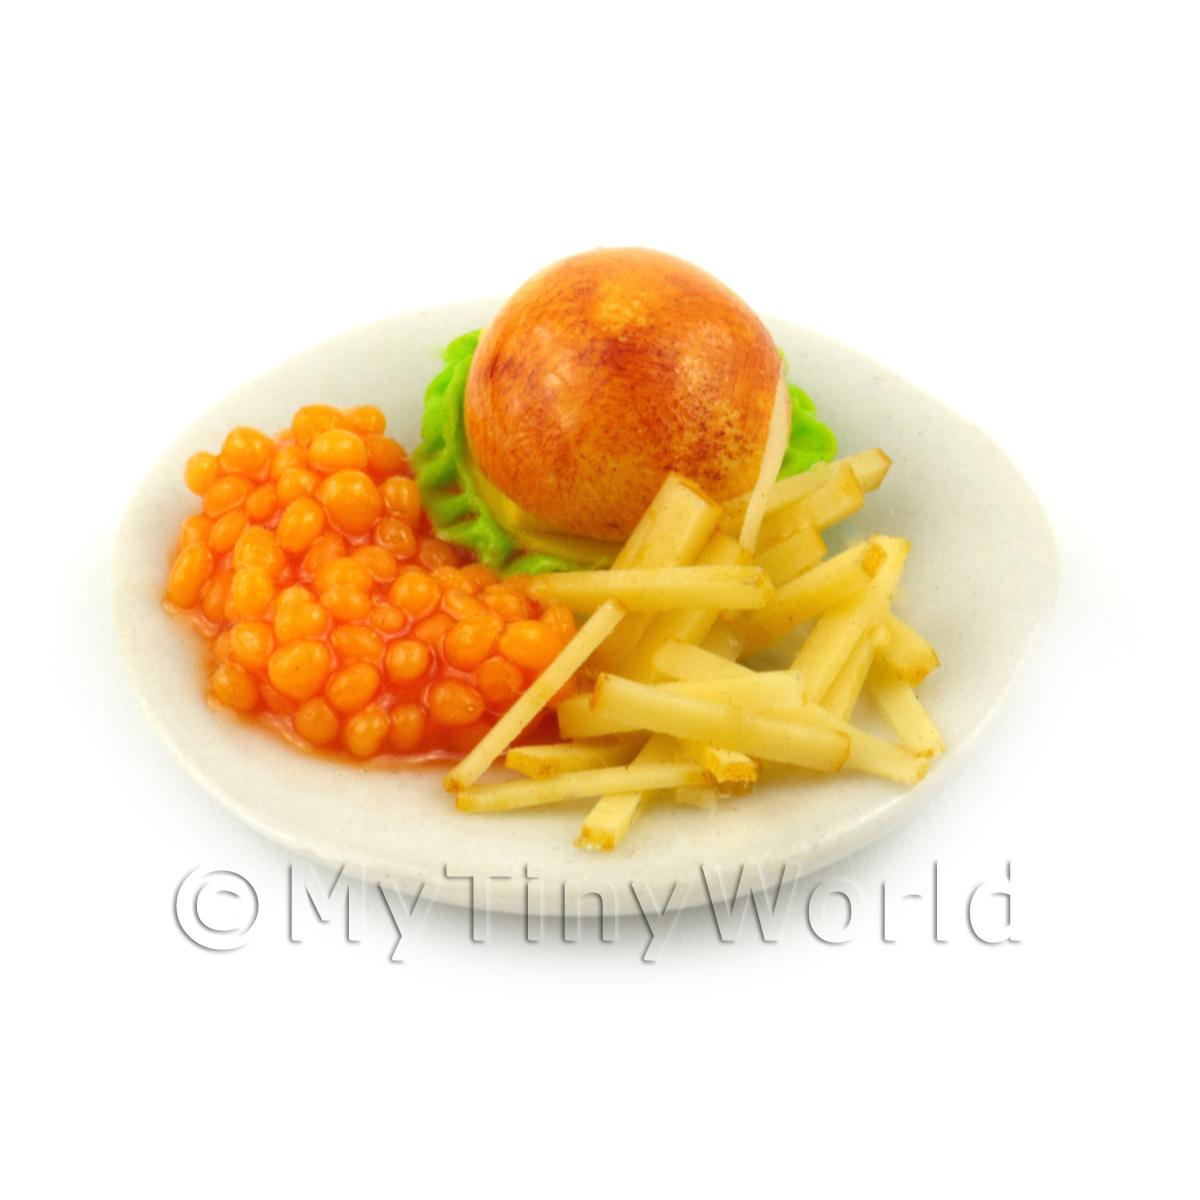 Dolls House Miniature 1/4 Pound Cheese Burger With Chips and Beans